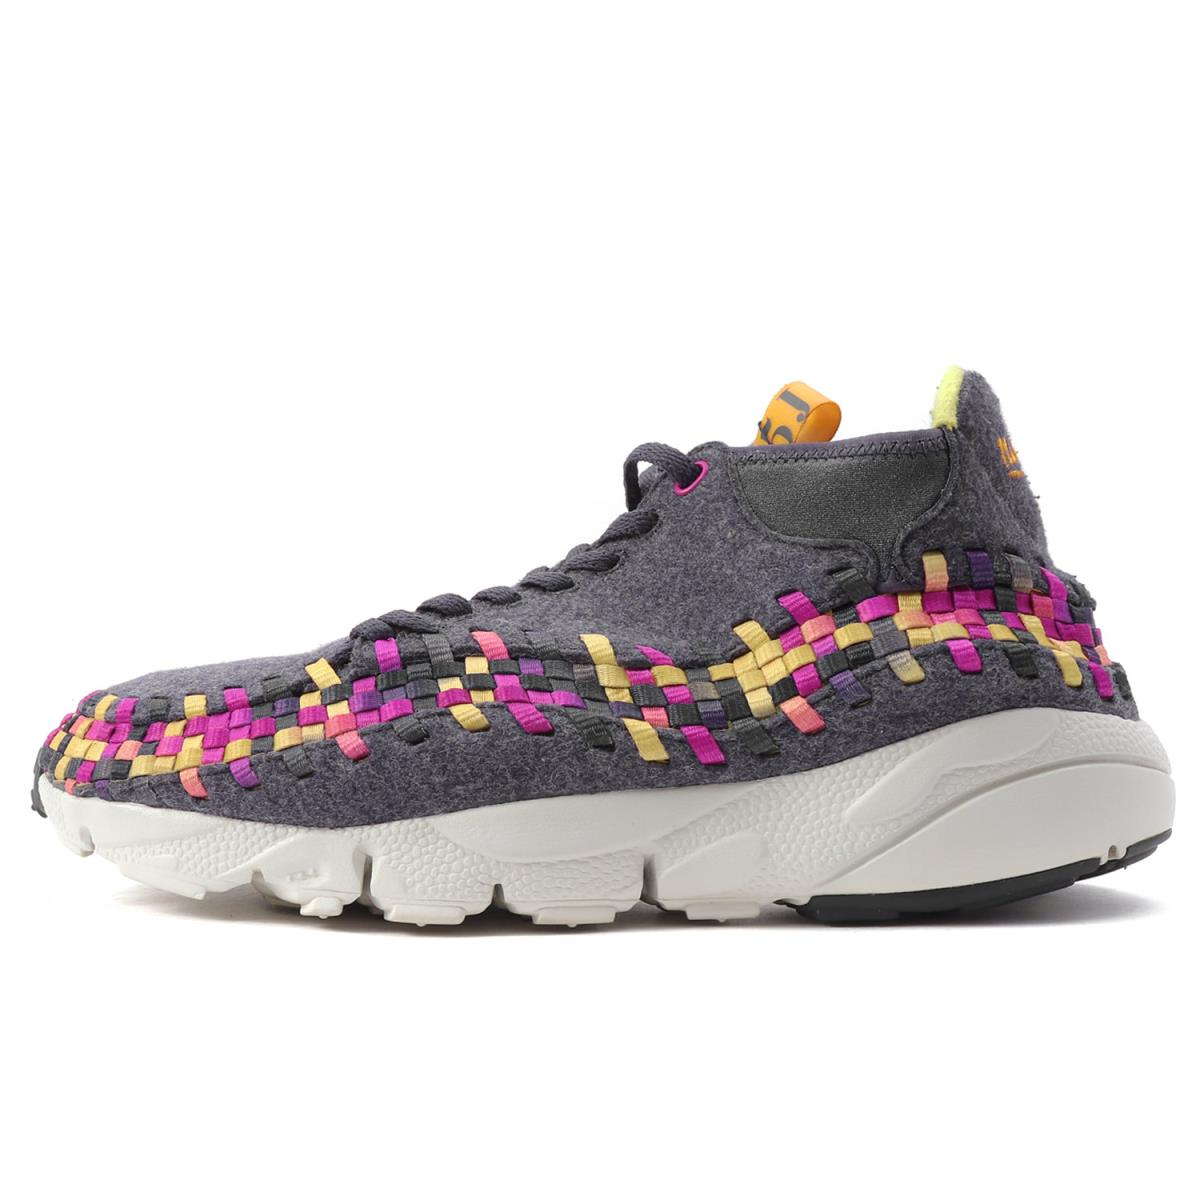 NIKE (ナイキ) AIR FOOTSCAPE WOVEN CHUKKA WOOL PACK (443686-077) グレー US9.5(27.5cm) 【美品】【K1947】【中古】【あす楽☆対応可】